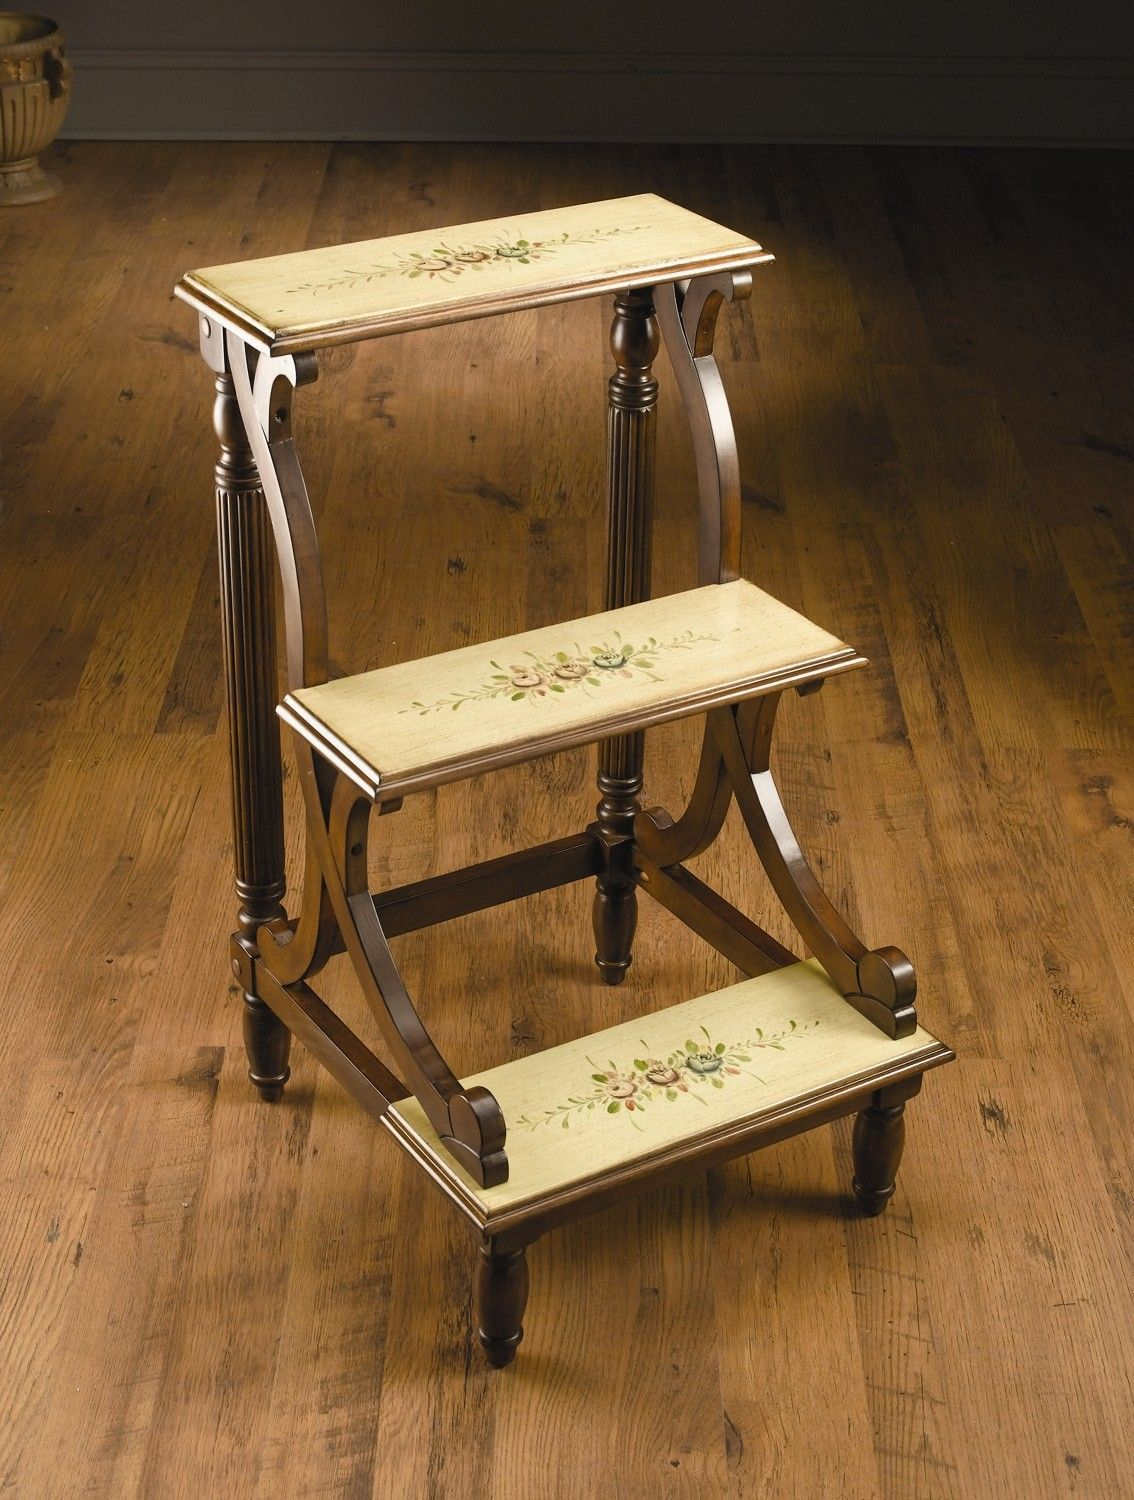 3 Step Wood Library Step Stool Library Steps Pinterest